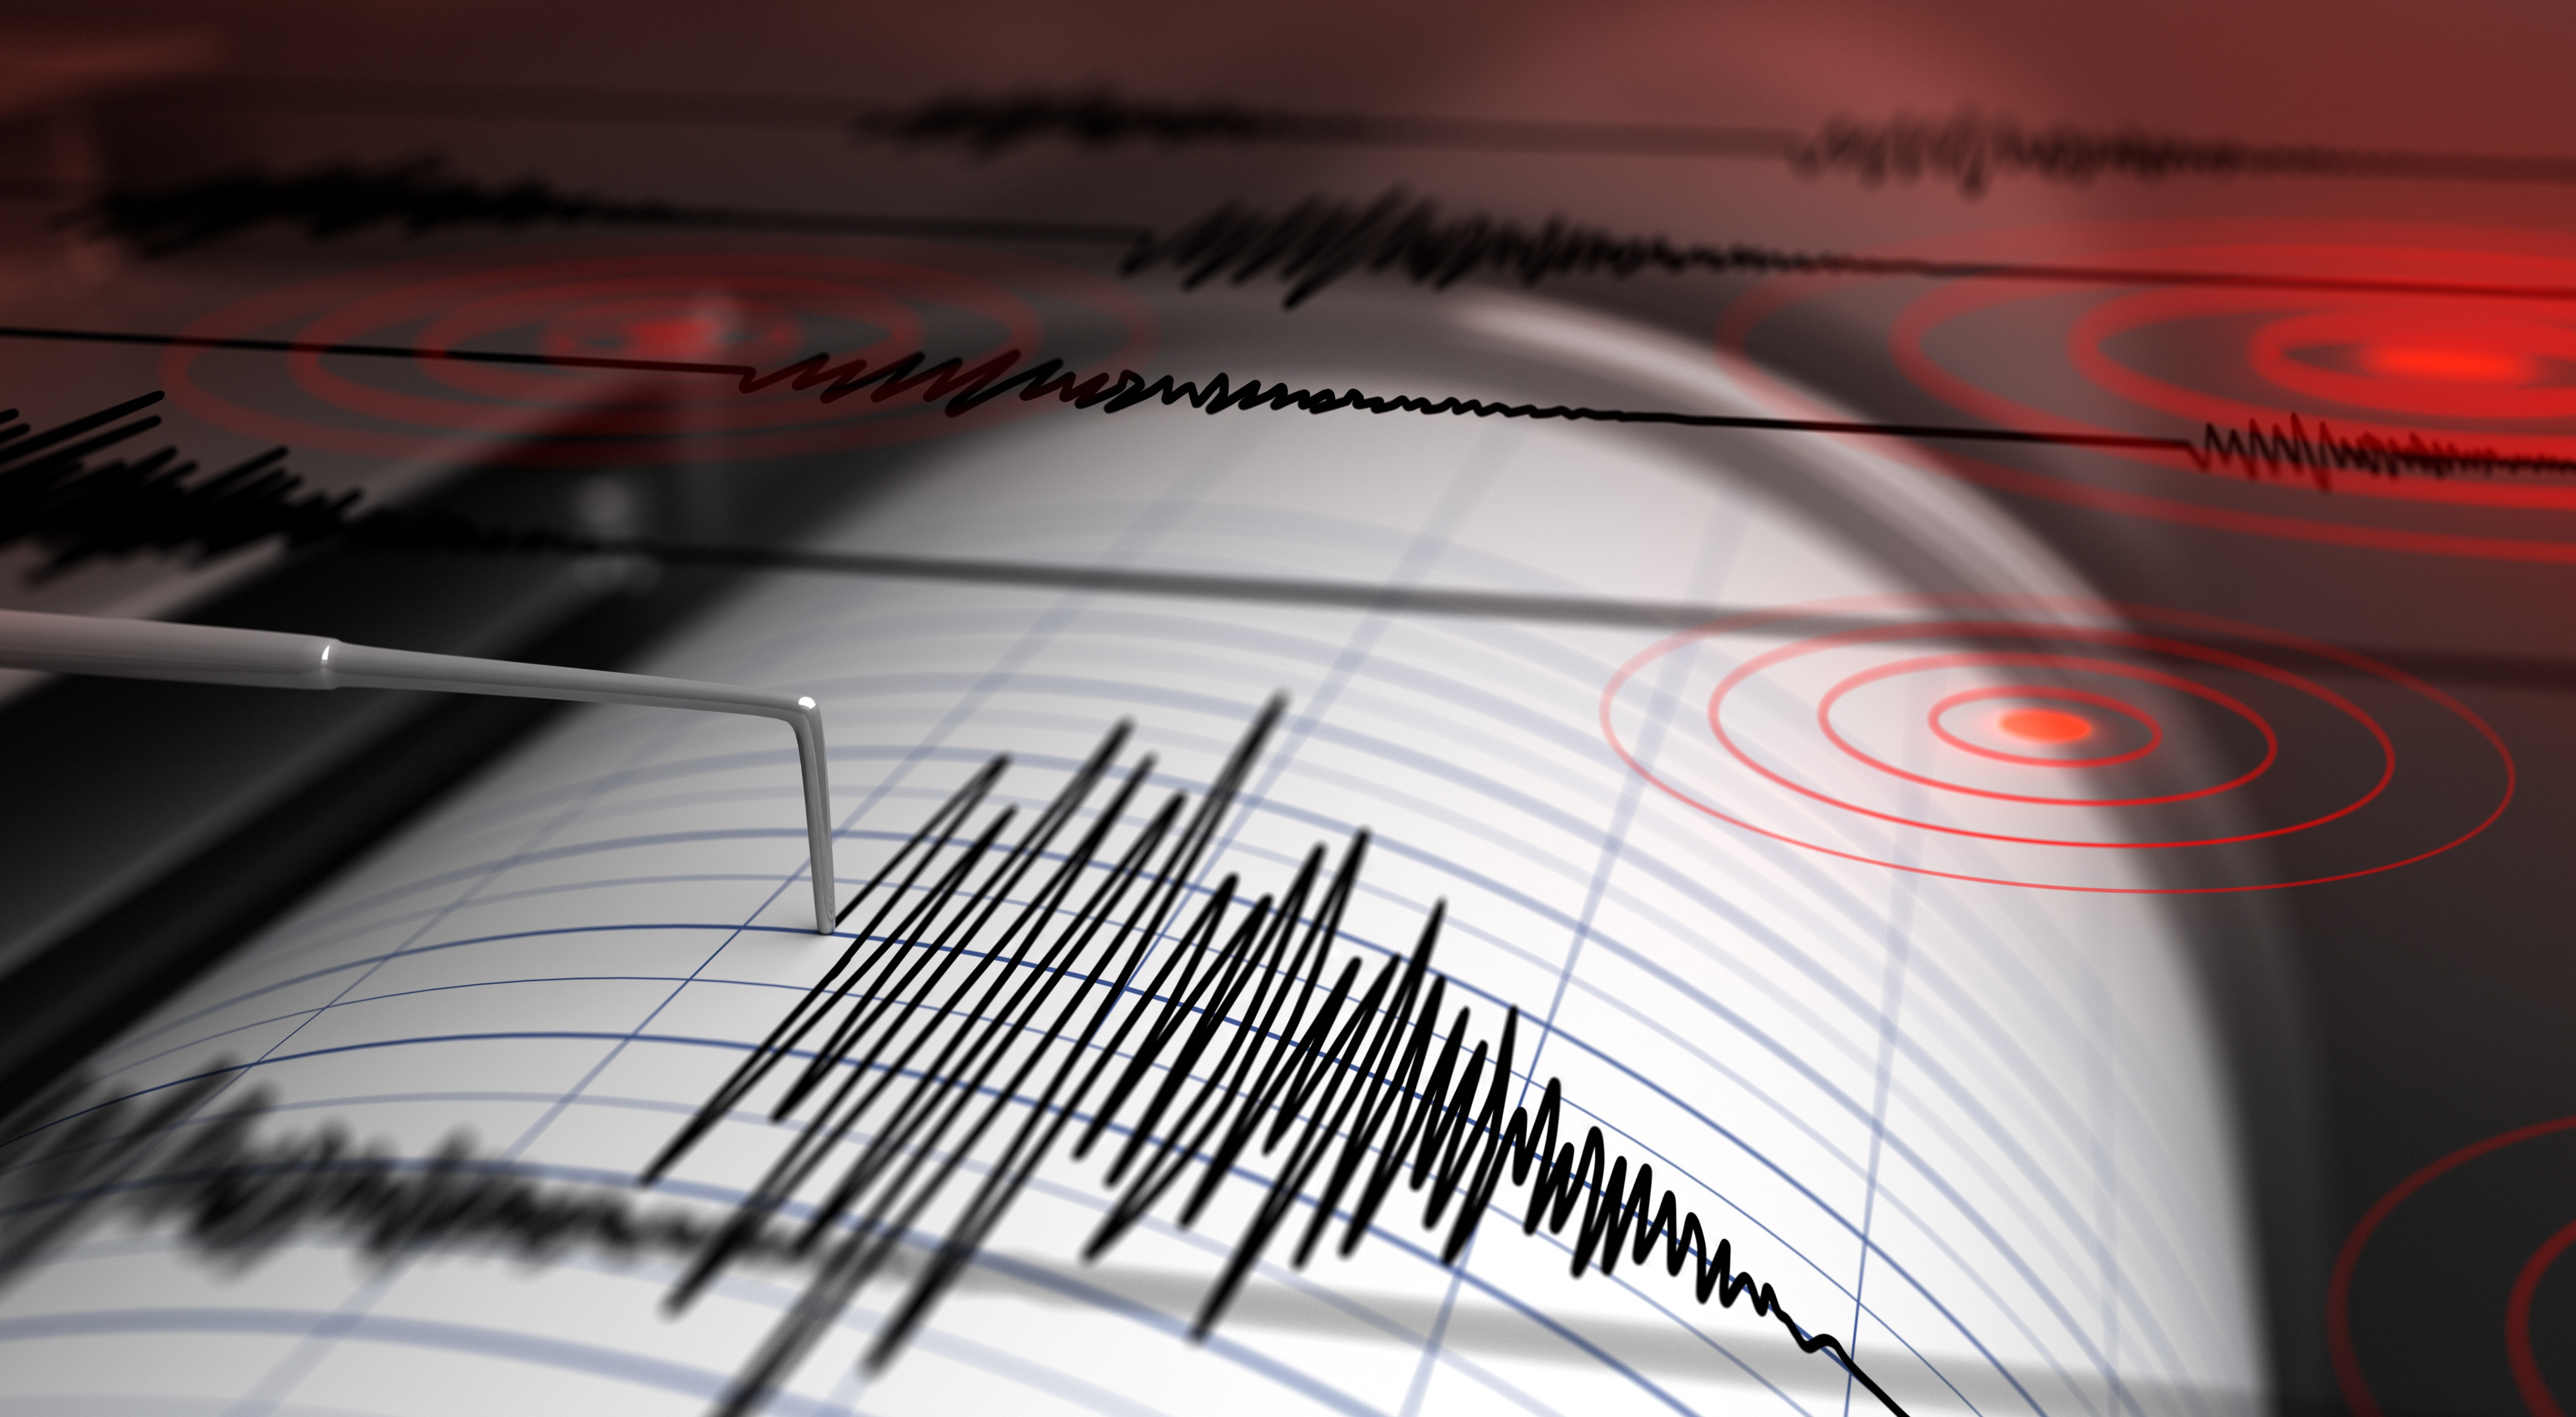 Earthquake Safety Tips for You and Your Community